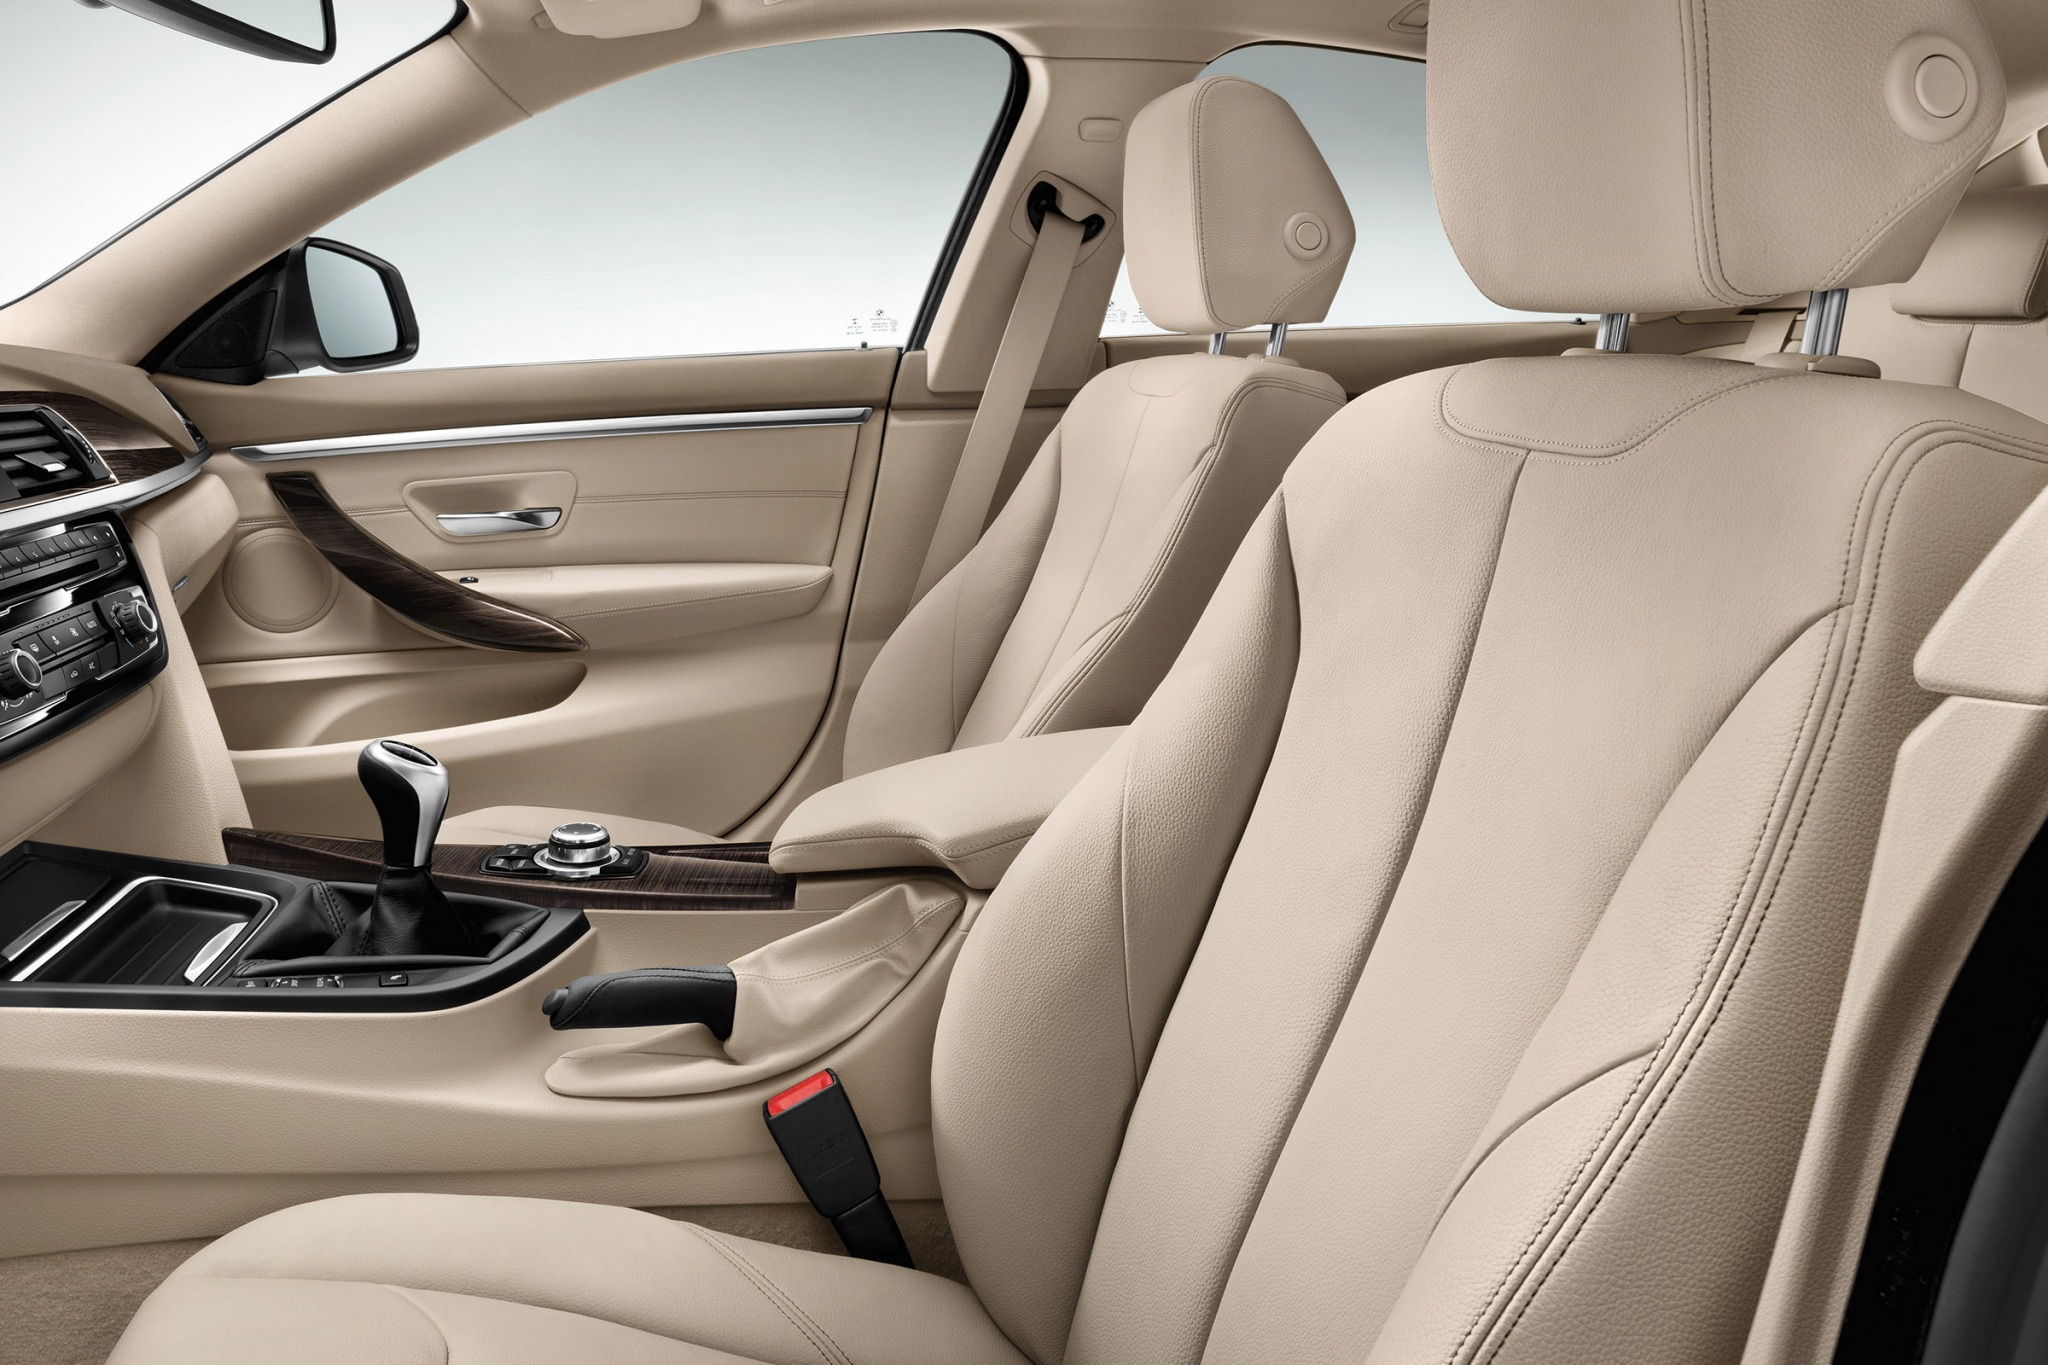 2015 Bmw 4 Series Gran Coupe Front Seat (View 9 of 11)